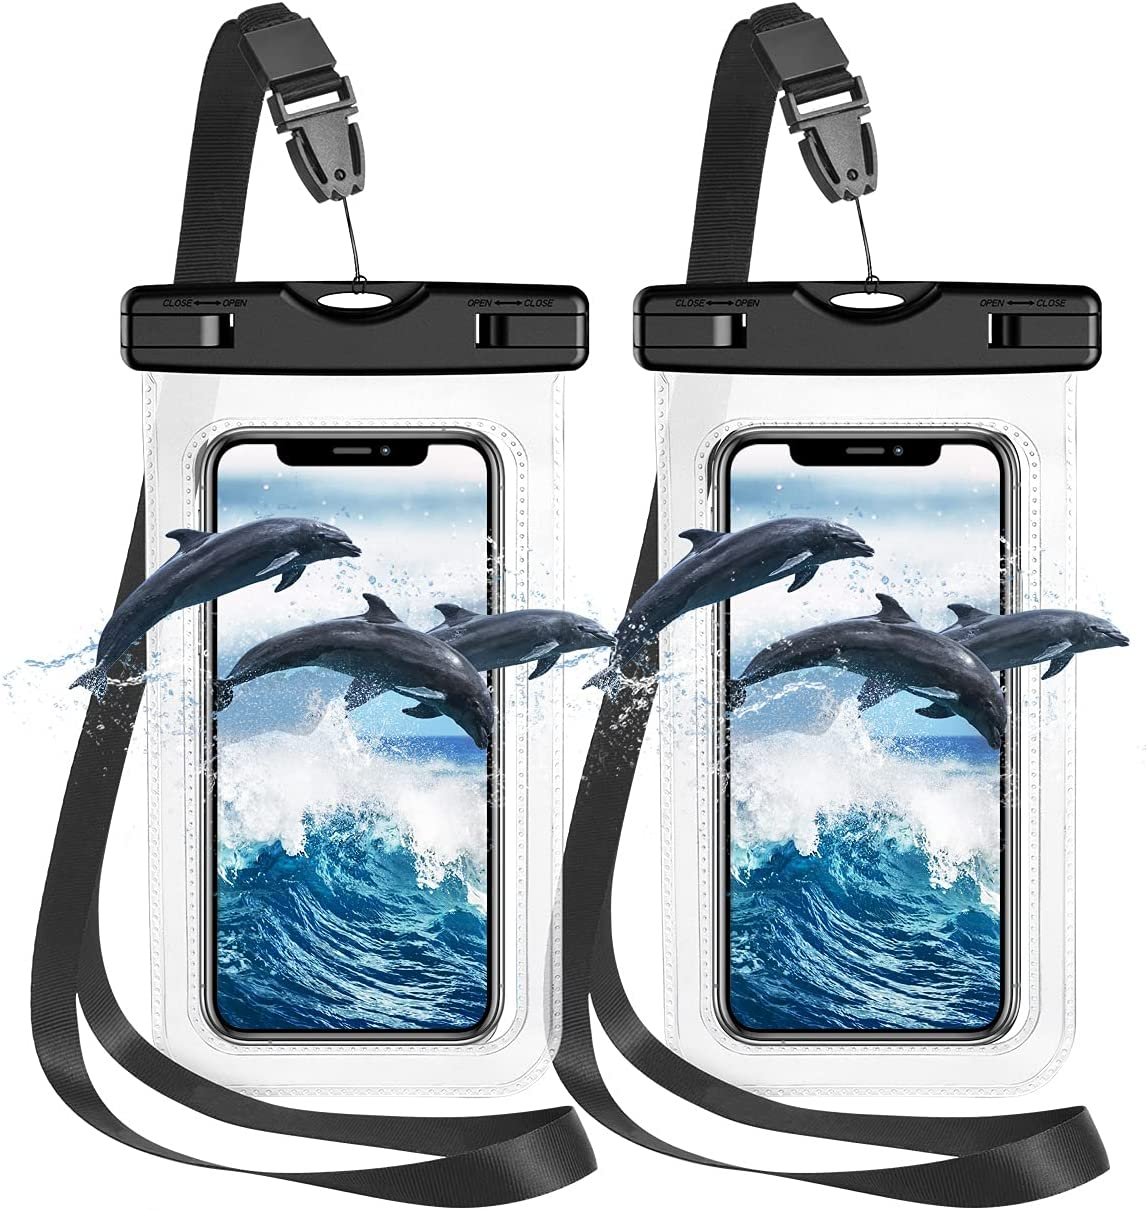 """Waterproof Phone Case, 2 Pack IPX8 Universal Waterproof Phone Pouch Dry Bag with Lanyard for Outdoor Water Sports, Boating, Hiking for iPhone 12 Pro Max/11/XS Max/XR/X Galaxy S21 S20 etc. up to 7.0"""""""